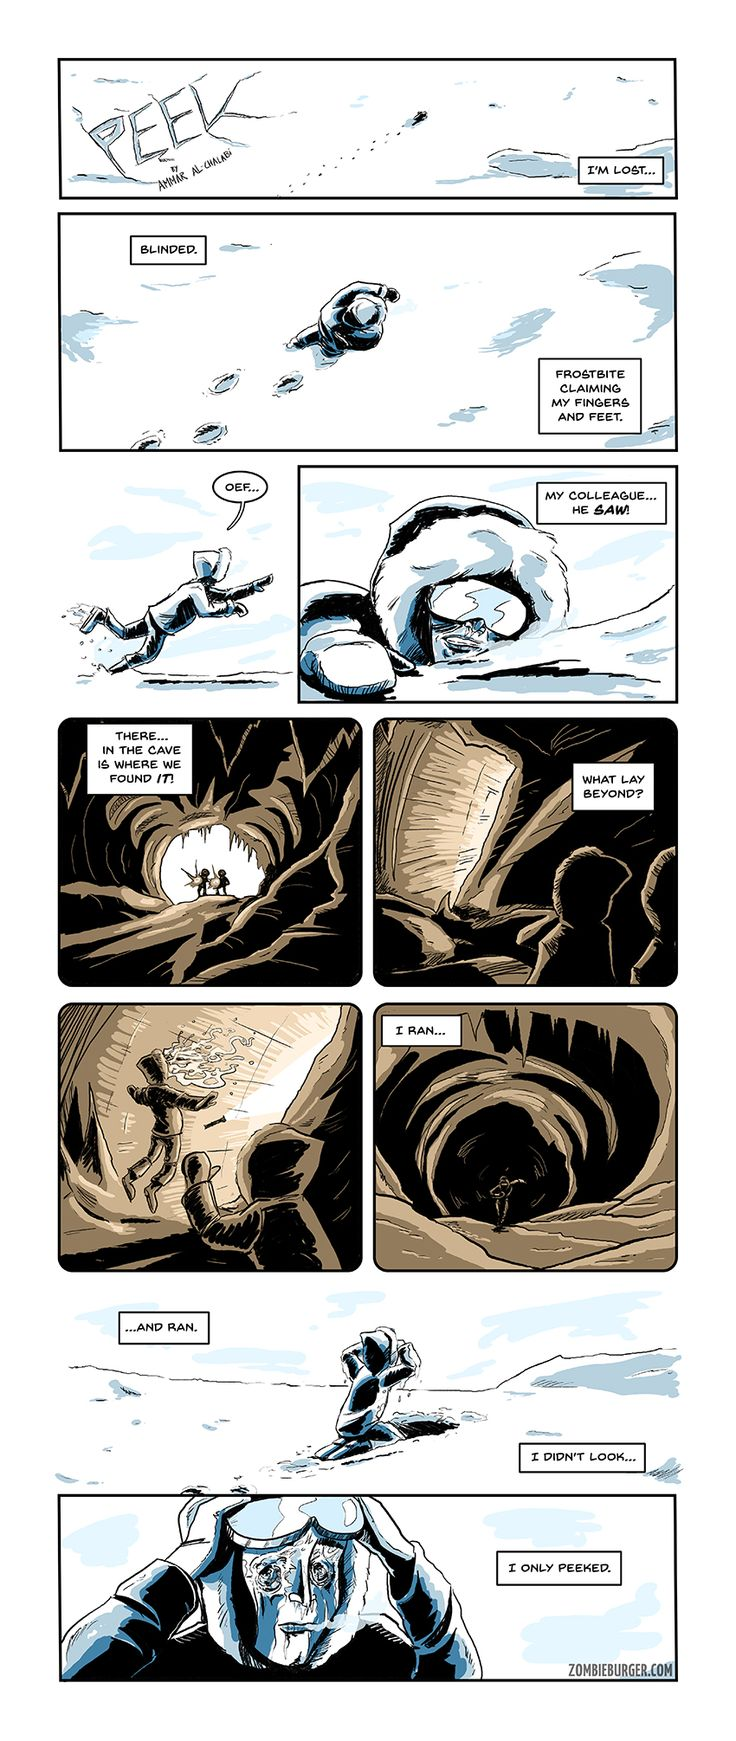 PEEK. A one page horror comic (Lovecraft / The Thing)